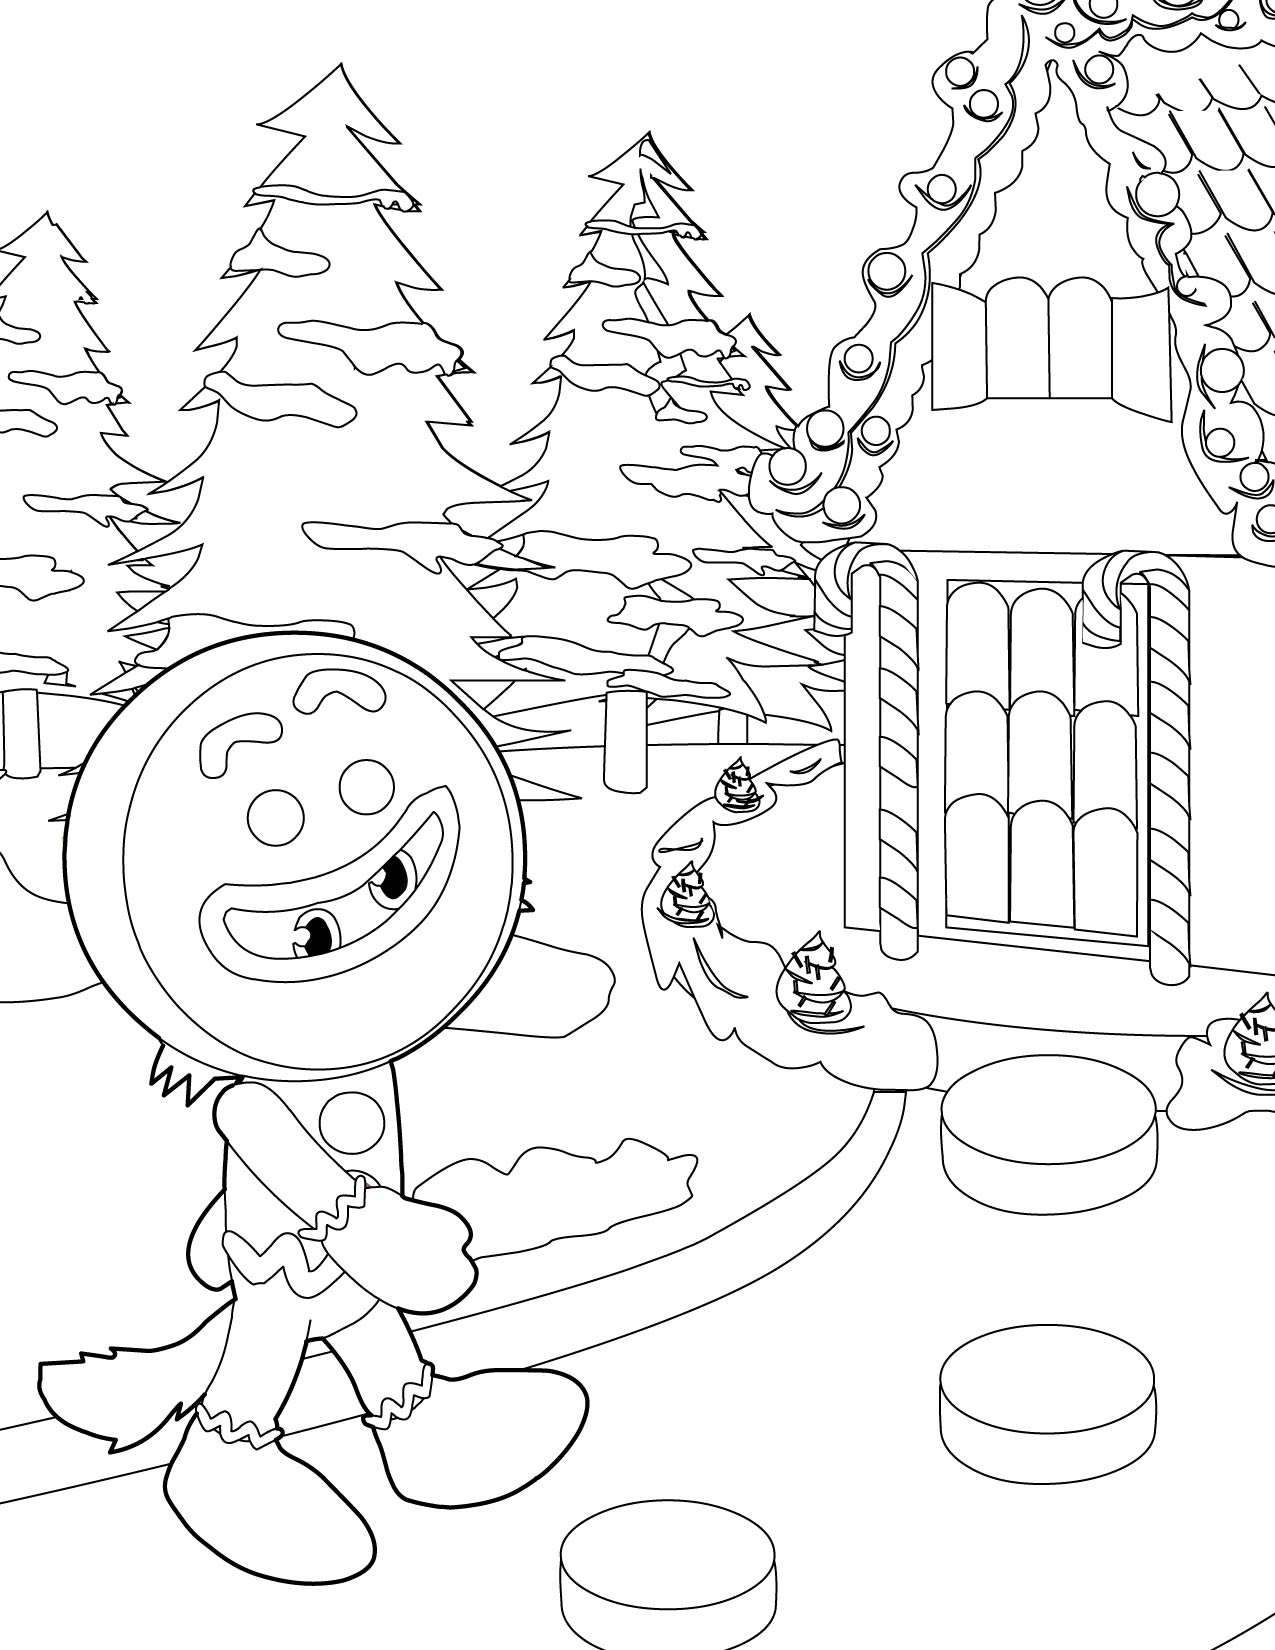 1275x1650 Modest Gingerbread Man Story Coloring Pages Beautiful Printable